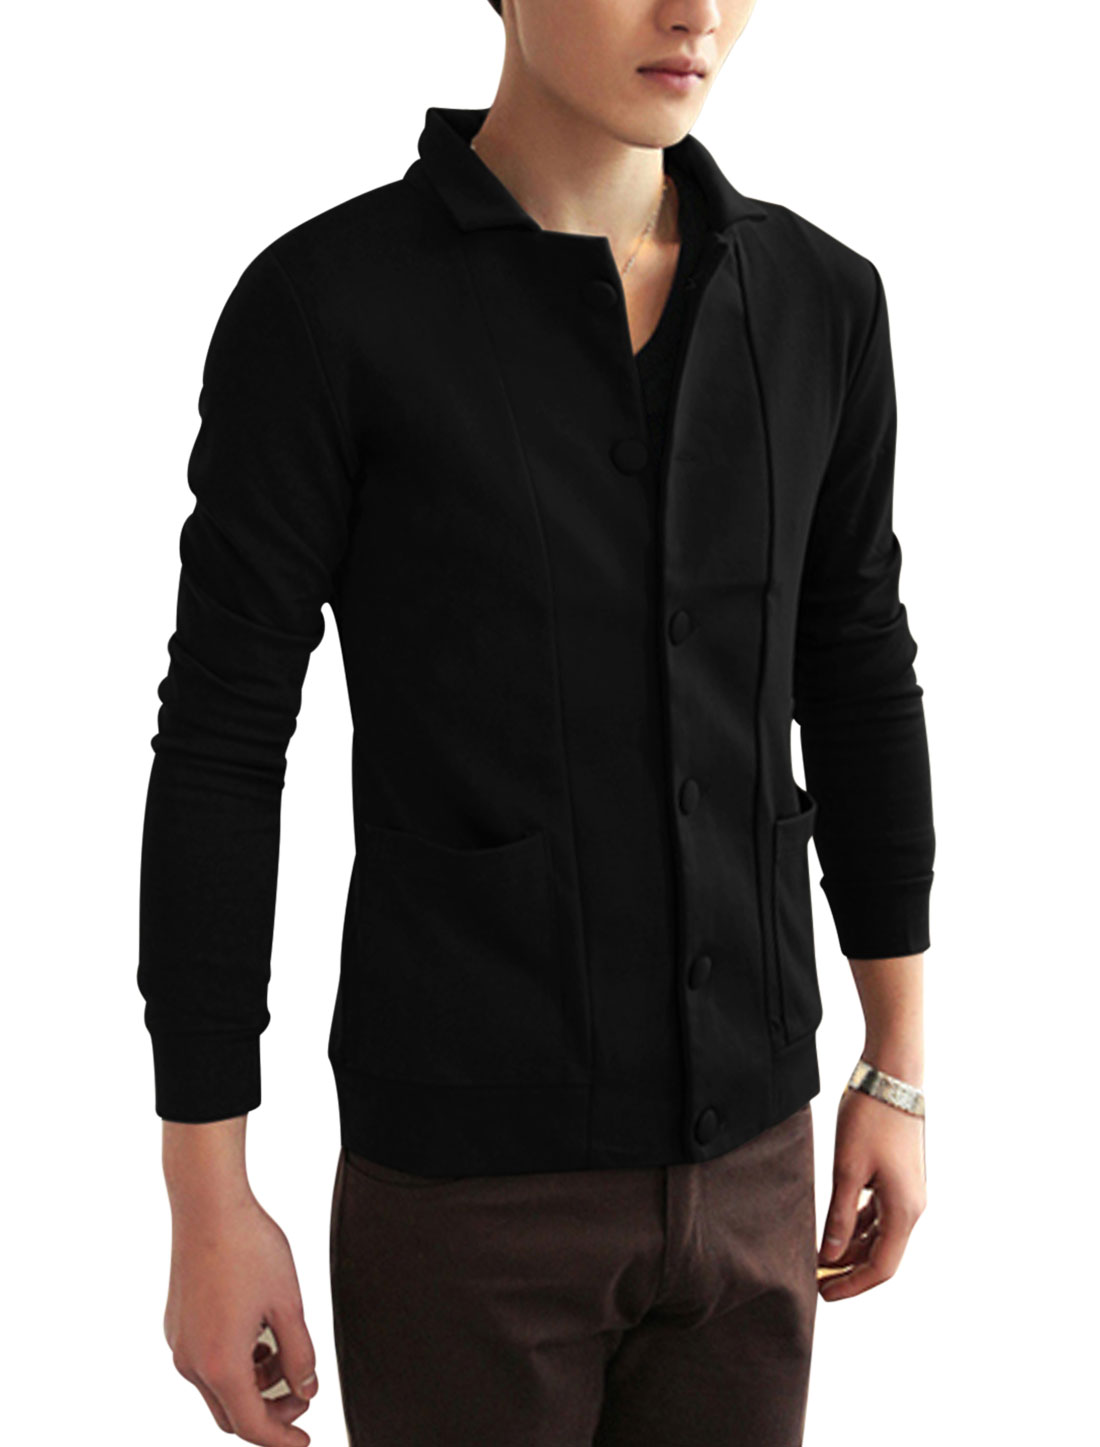 New Style Fashion Dobule Seam Pocket Front Jacket for Men Black M